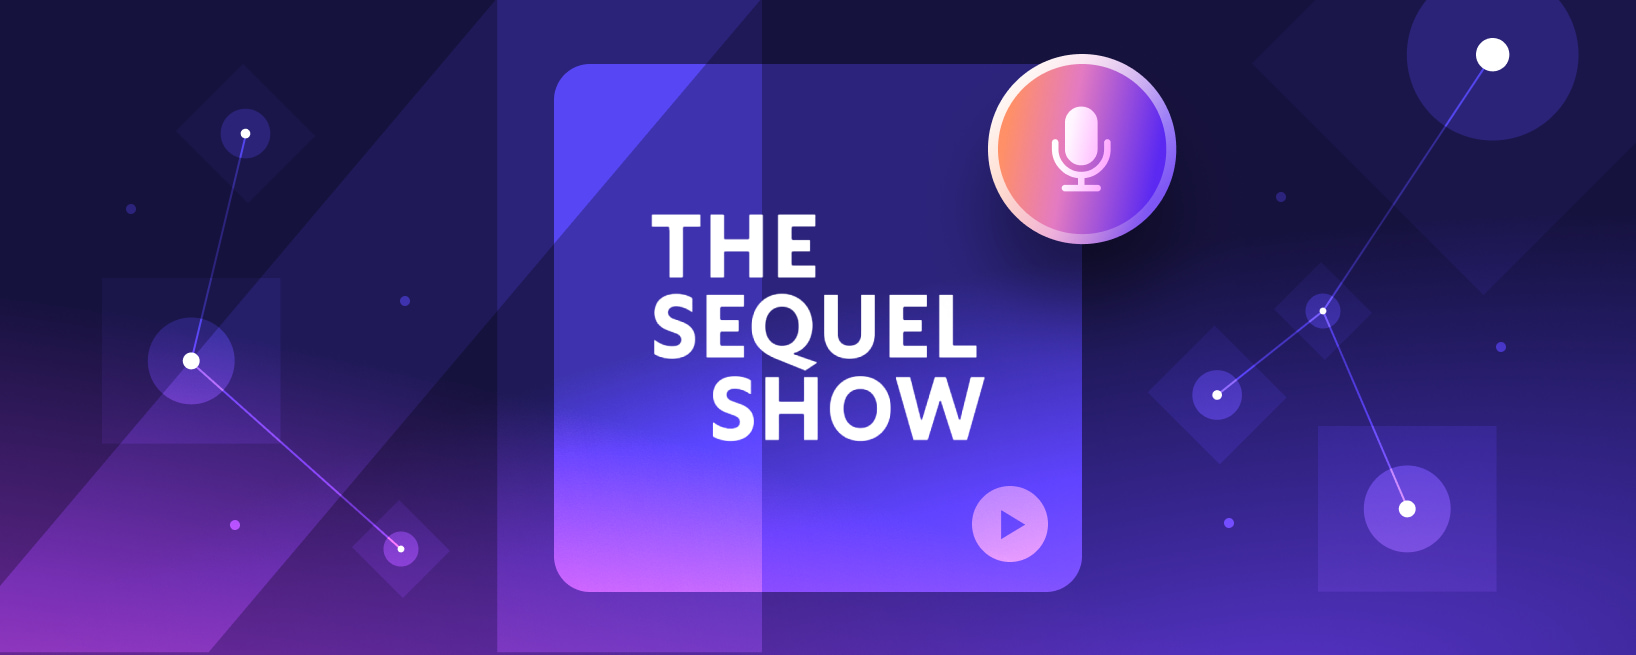 The Sequel Show – The show that kicked off the podcast. With Fivetran, dbt & Materialize. image